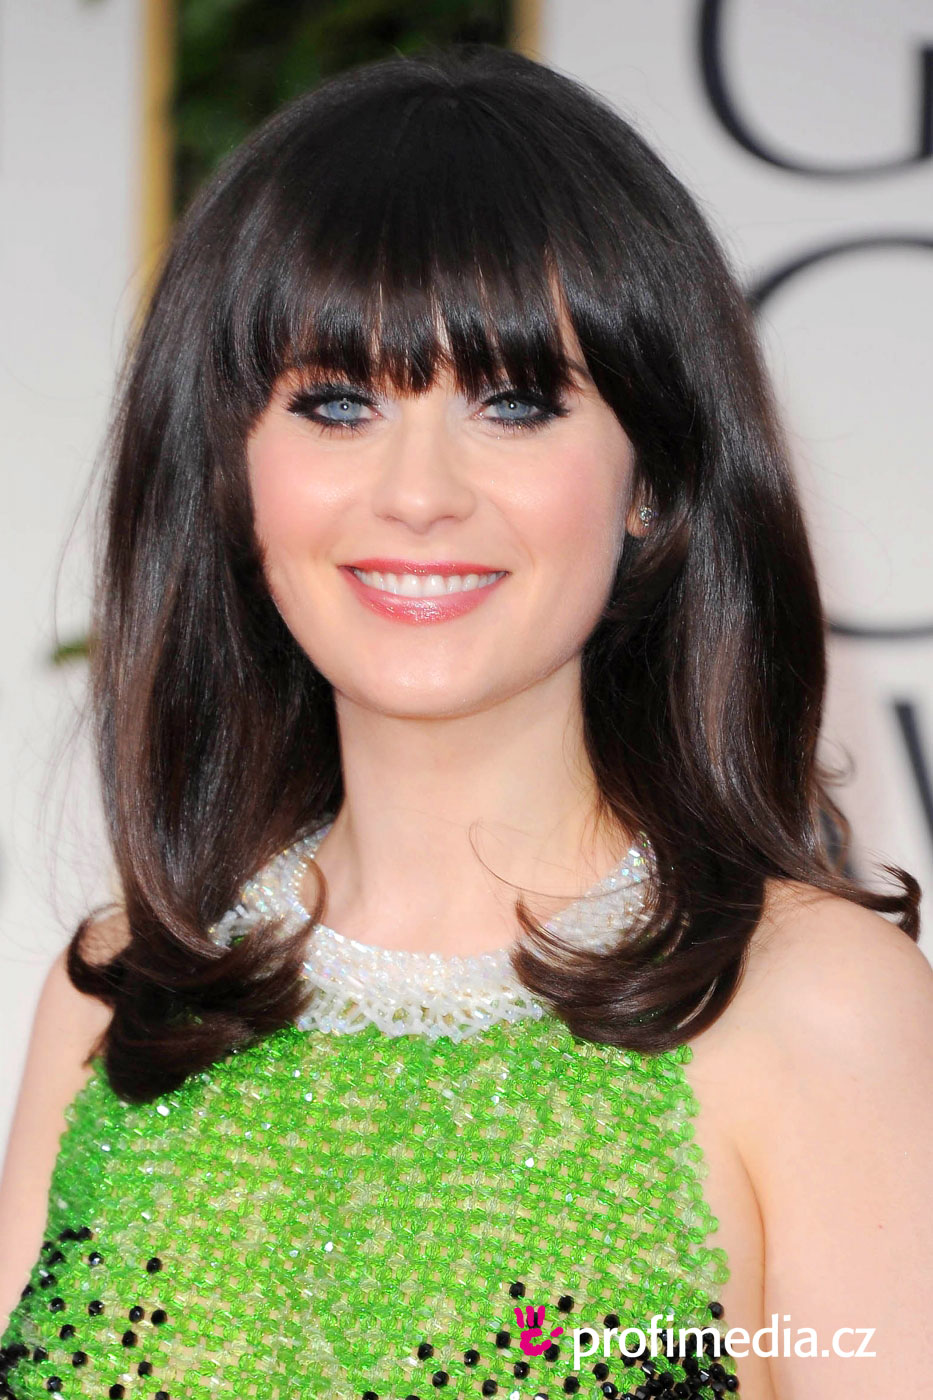 Hairstyles Zooey Deschanel : Prom hairstyle - Zooey Deschanel - Zooey Deschanel